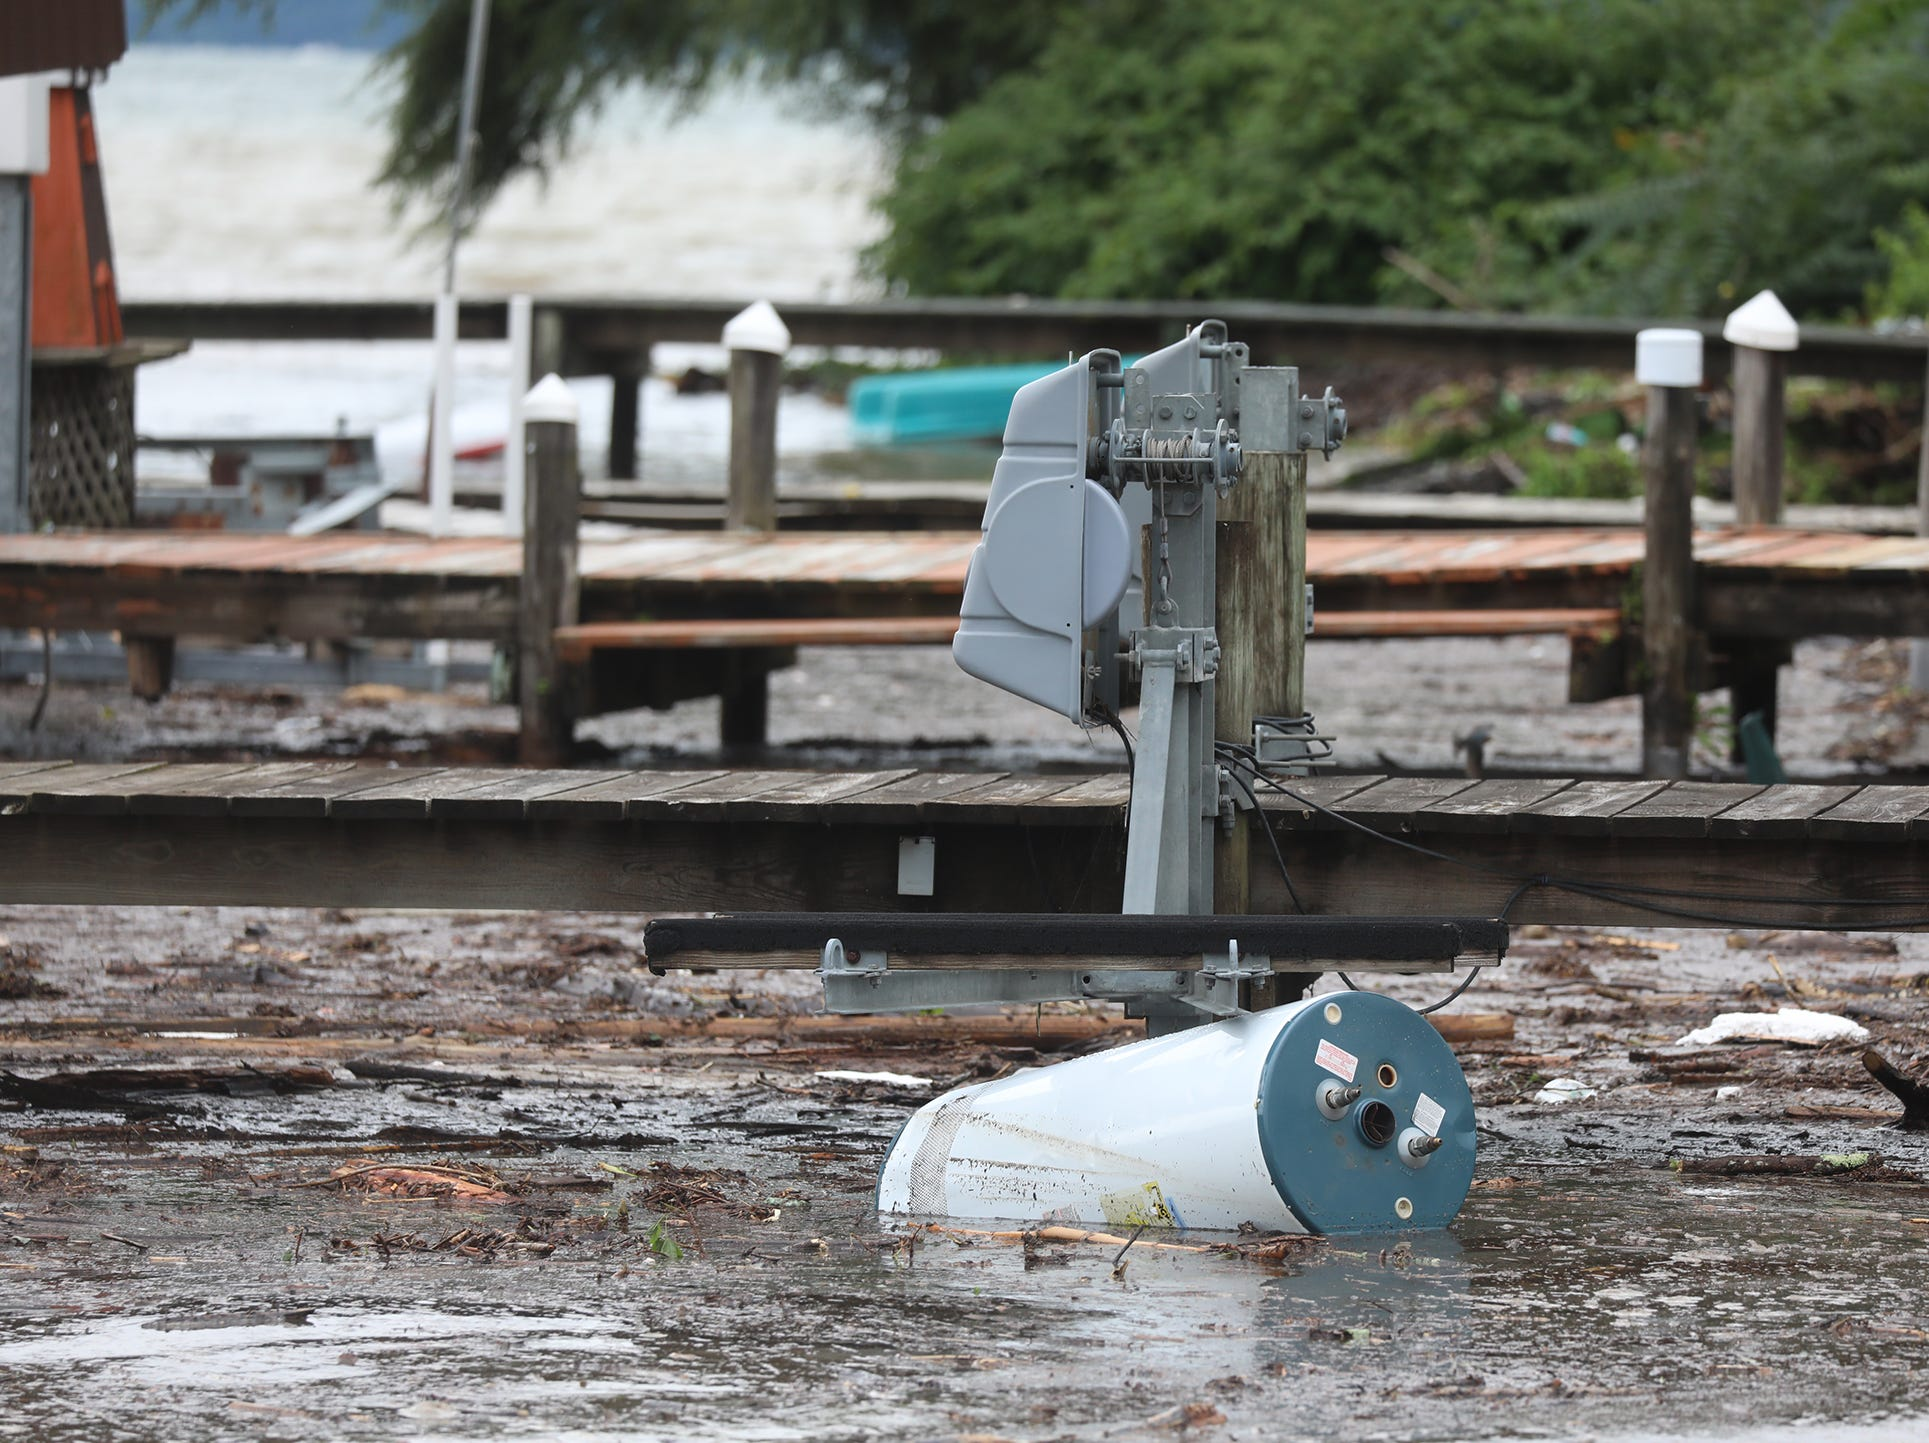 A hot water tank was washed into Seneca Lake after heavy rain caused flooding and washing away at Lodi Point, New York on Tuesday, August 14, 2018.